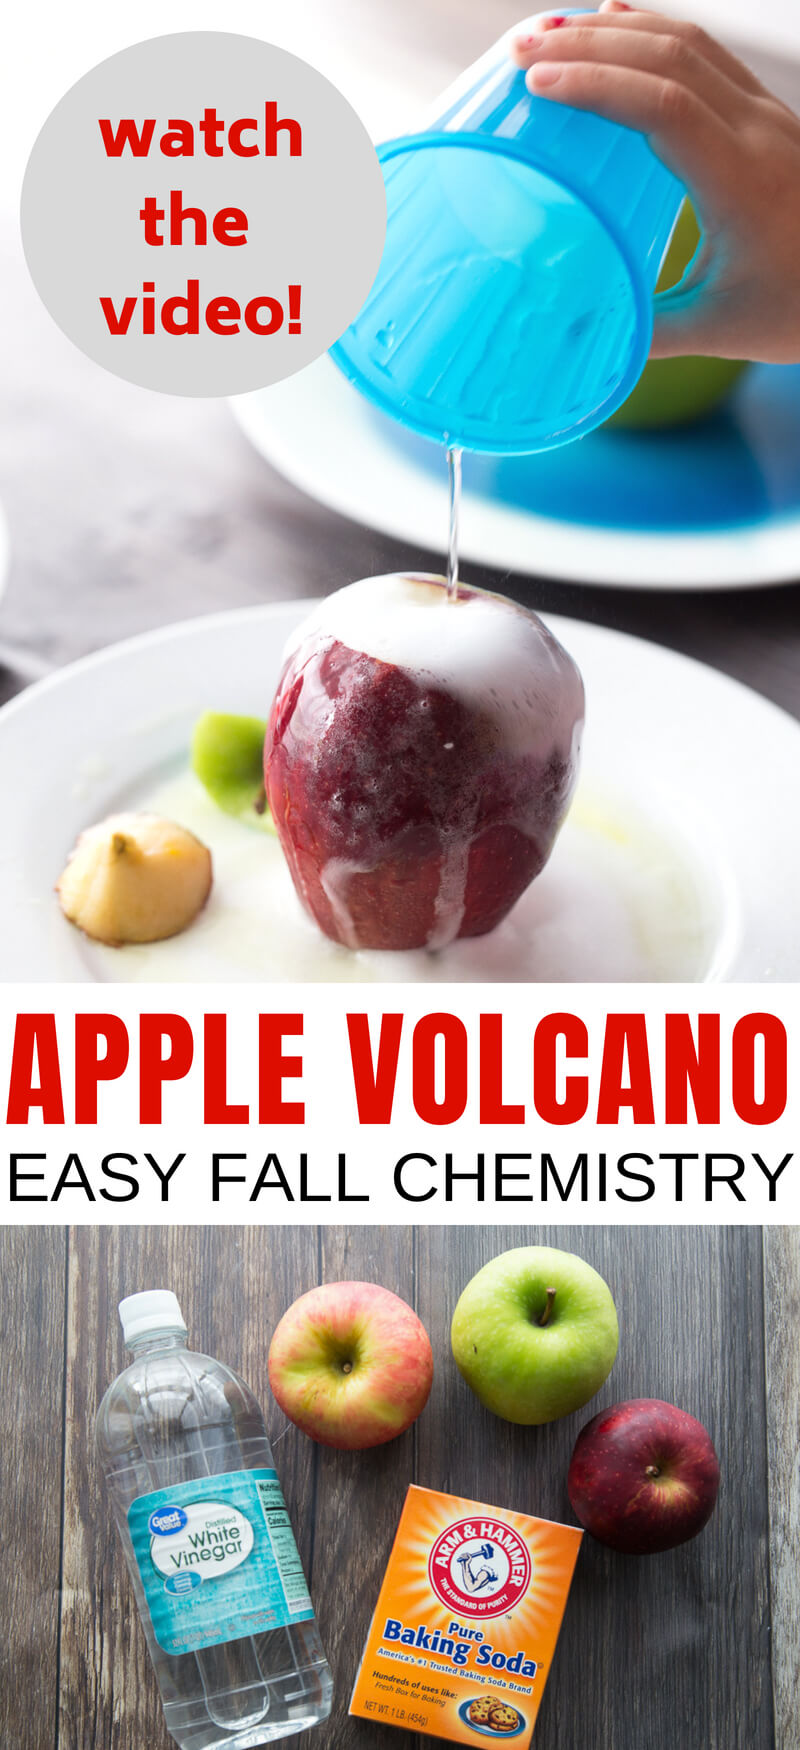 Erupting Apple Science Activity with Apple Volcano. Fall chemistry for kids with baking soda volcano activity.